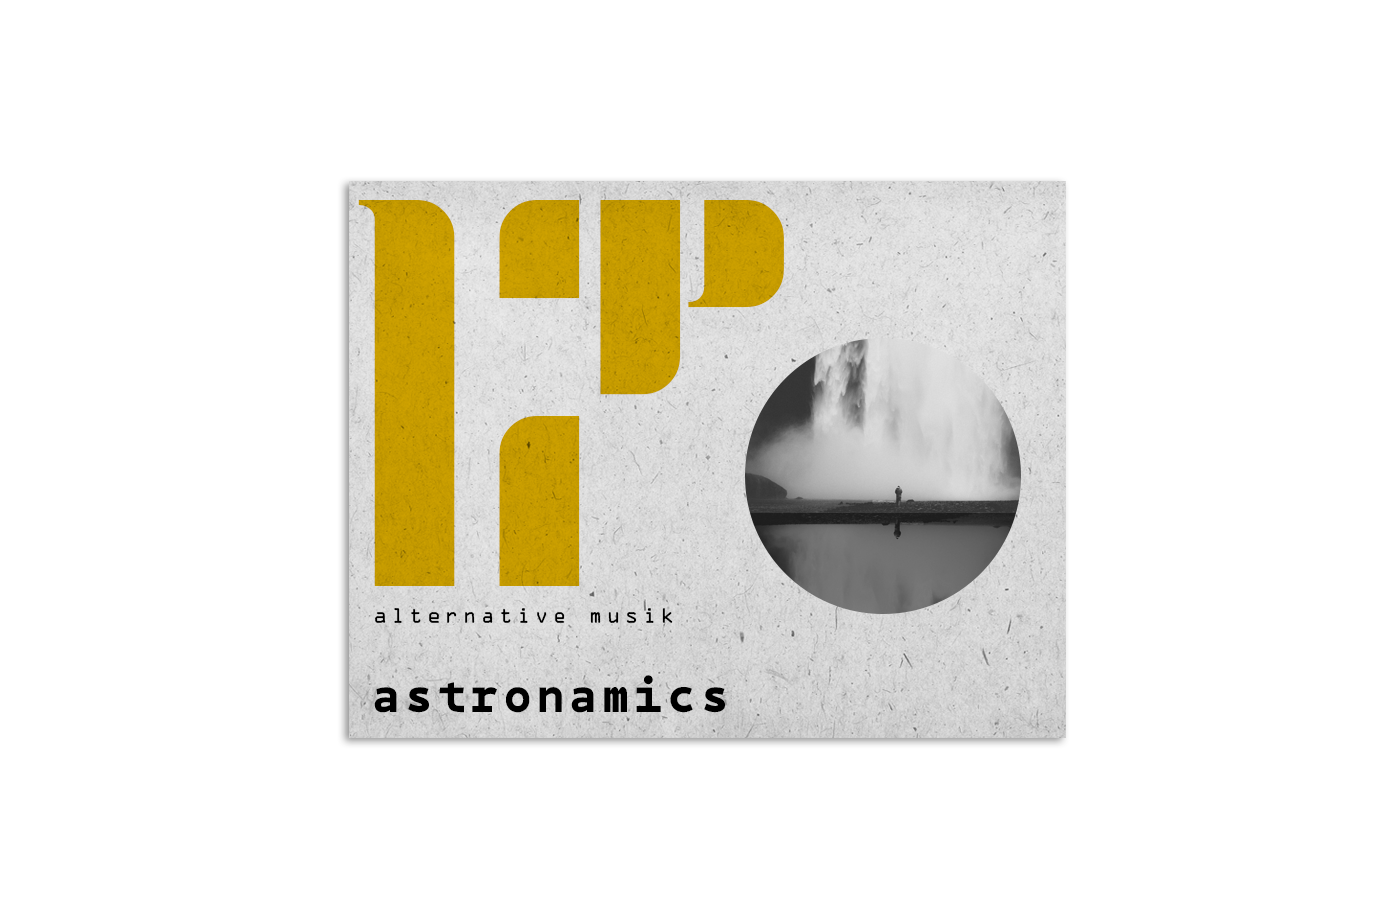 CD COVER  (ASTRONAMICS)